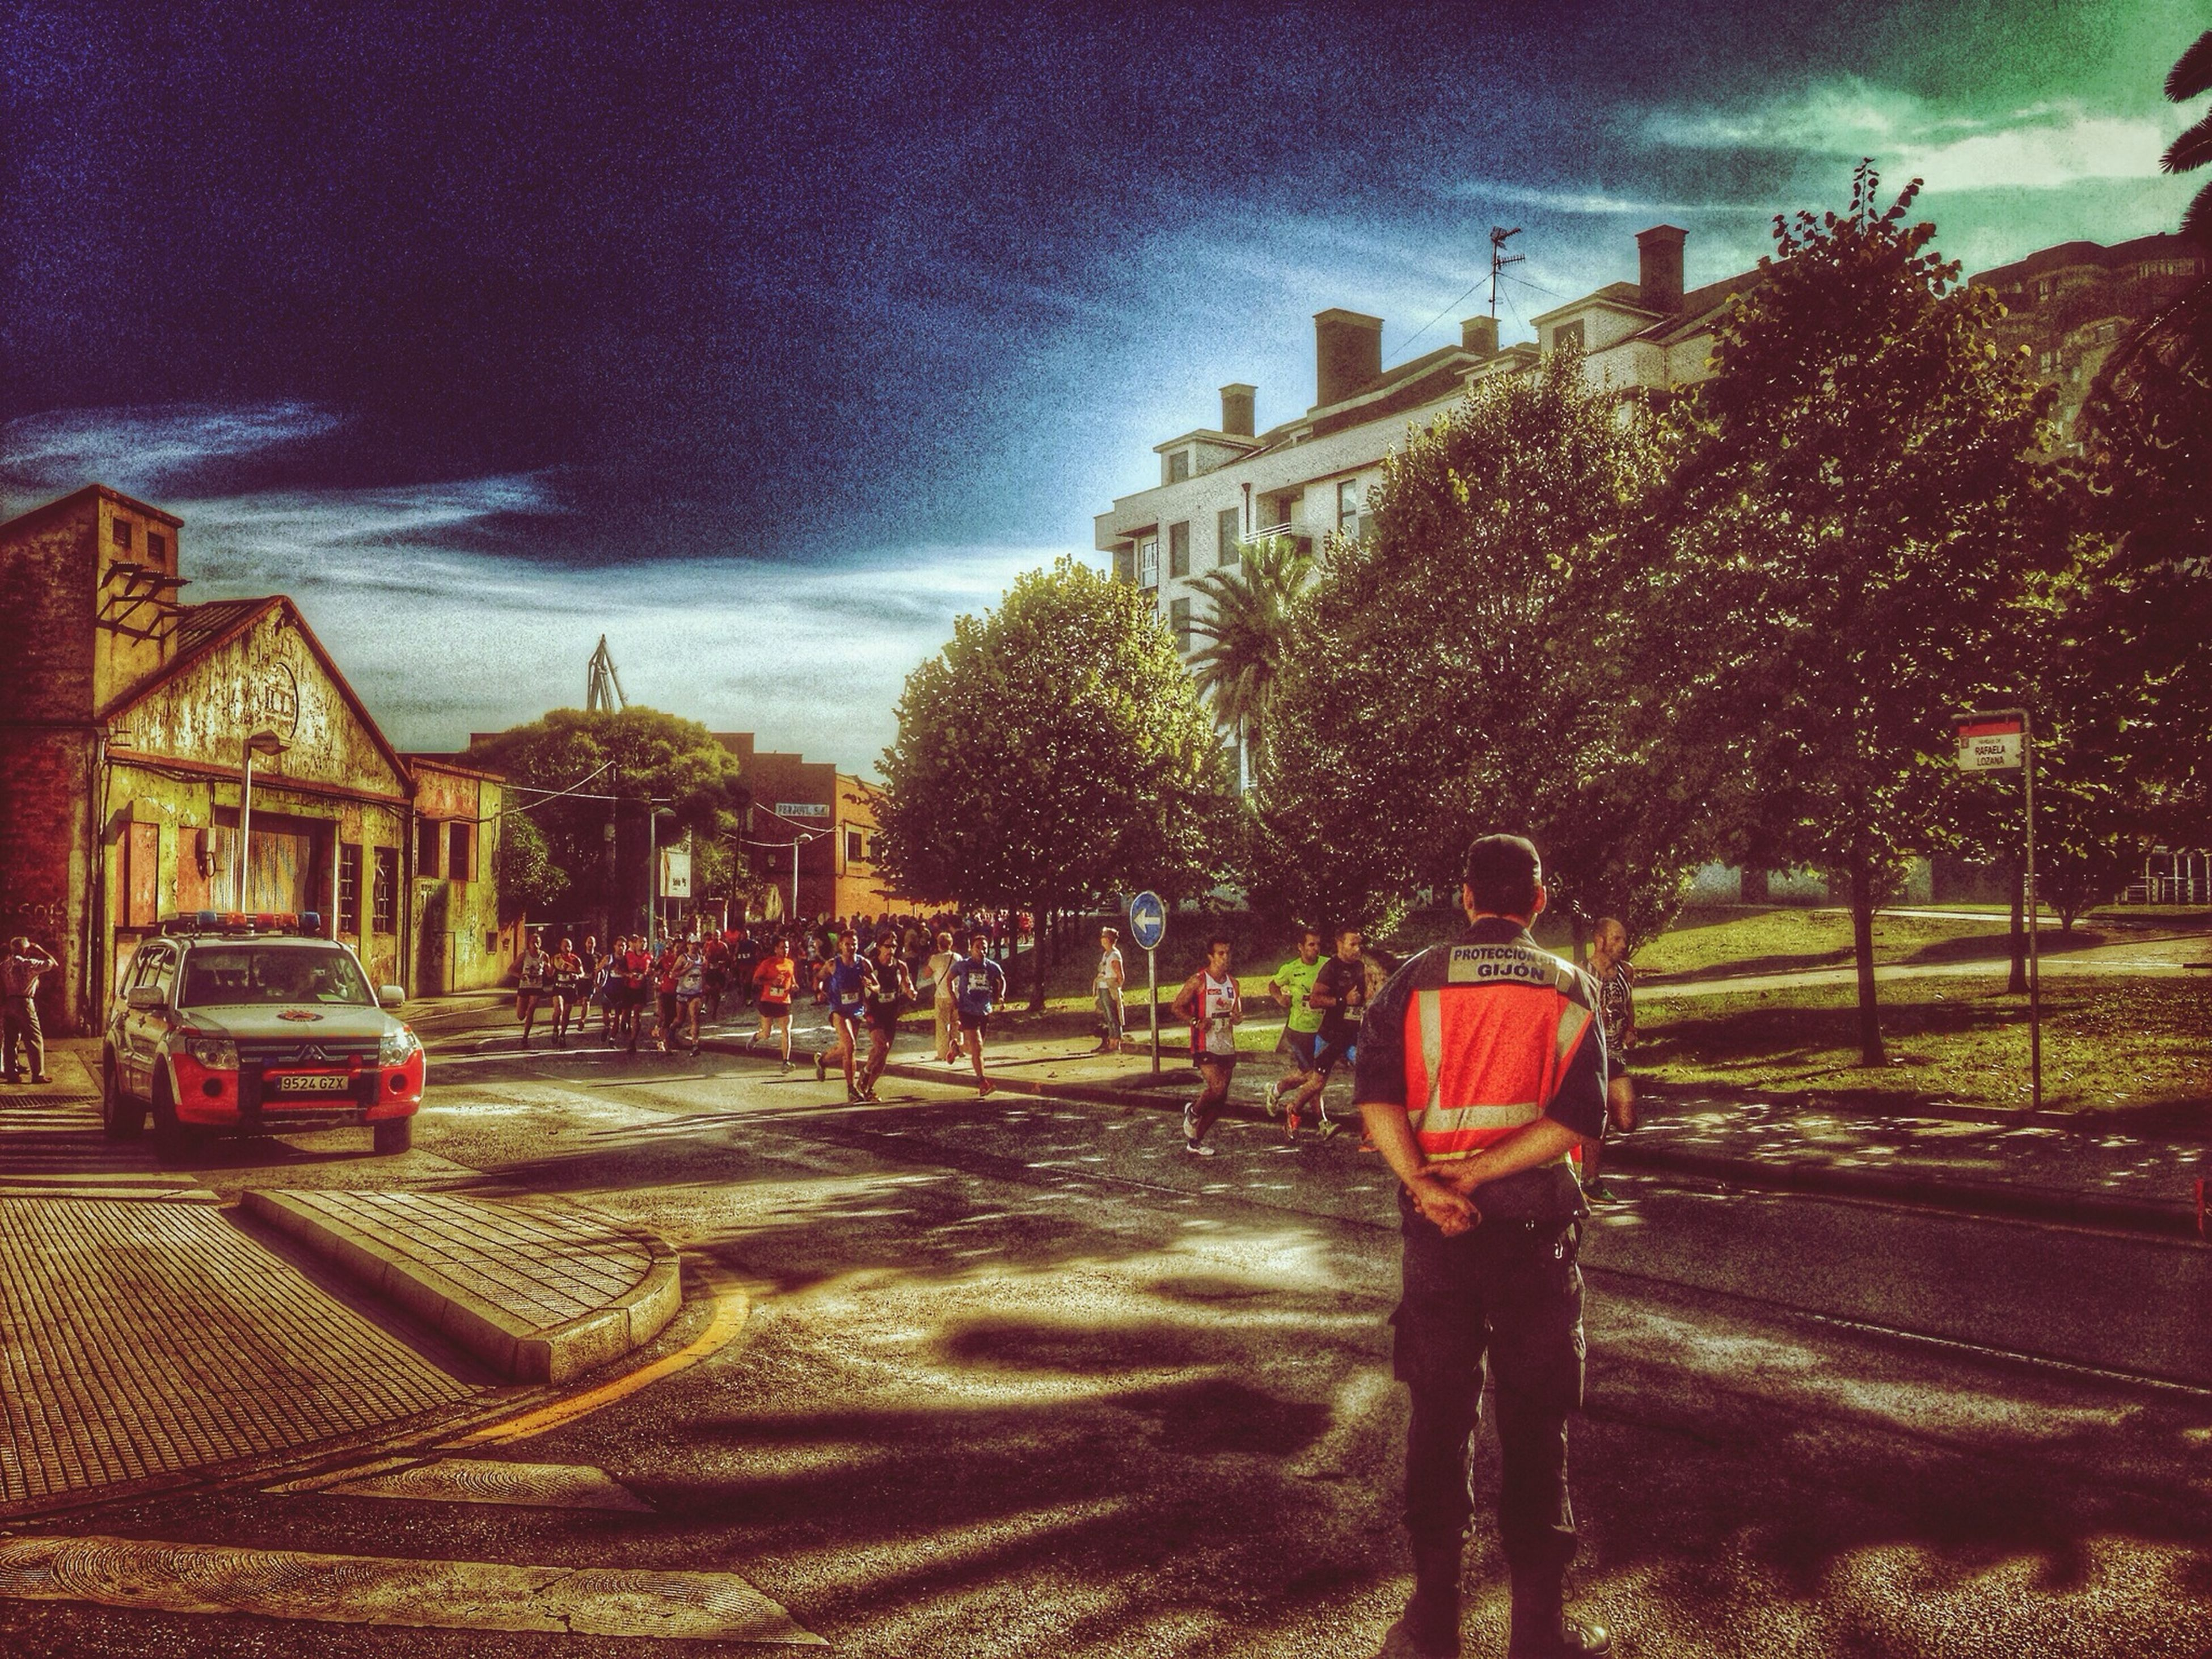 building exterior, sky, architecture, built structure, street, tree, city, cloud - sky, incidental people, city life, large group of people, car, person, outdoors, road, lifestyles, sunlight, house, residential structure